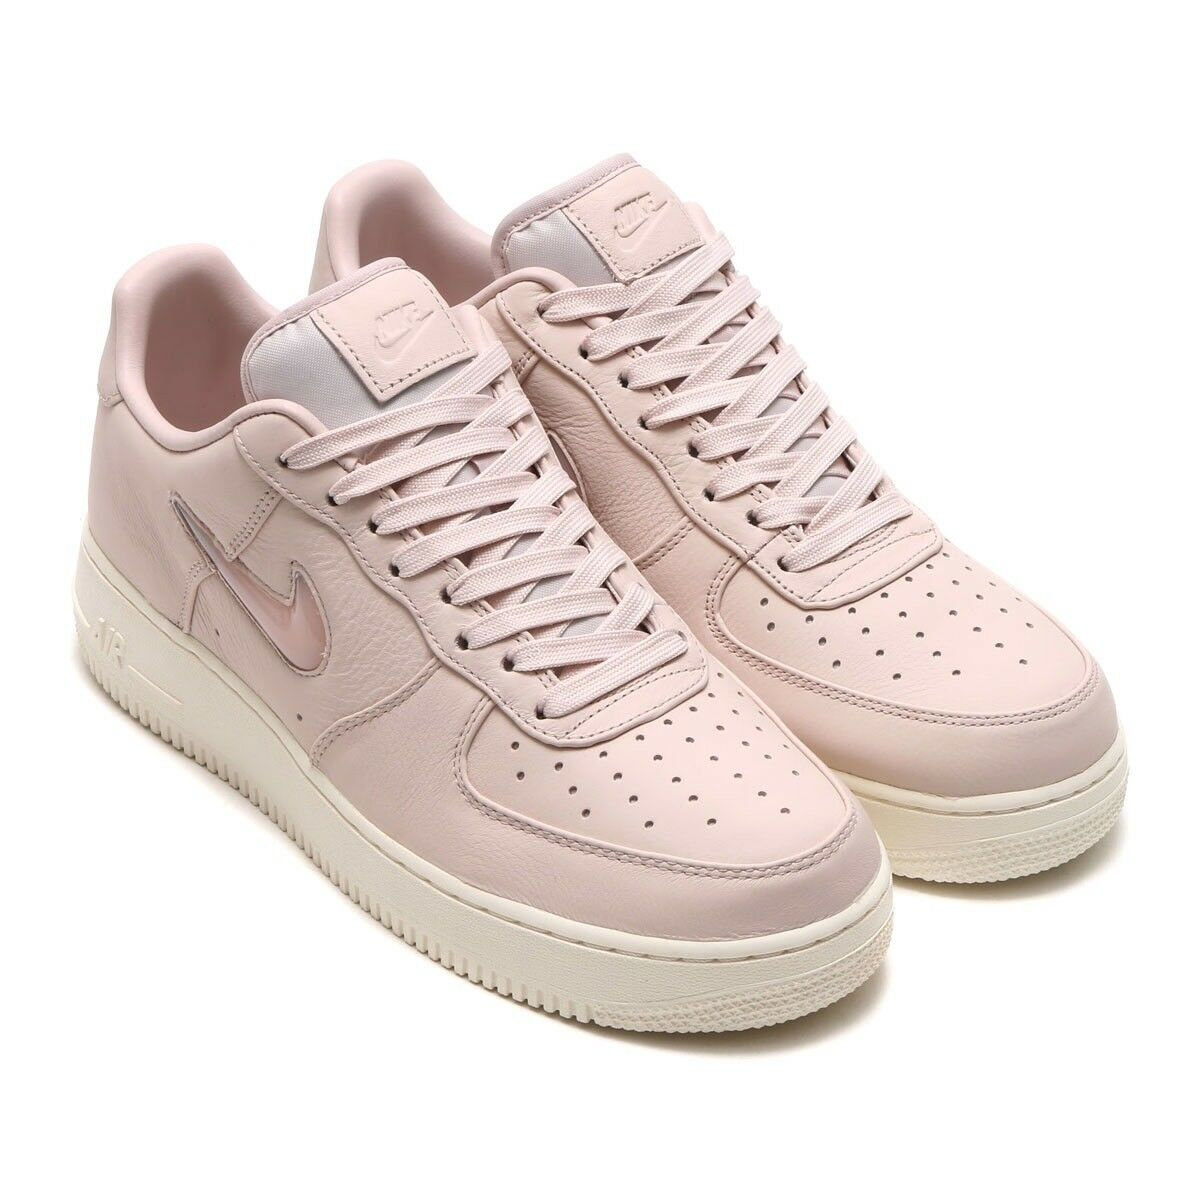 Neues mens air force 1 retro - prm 914912-600 schlamm rote.